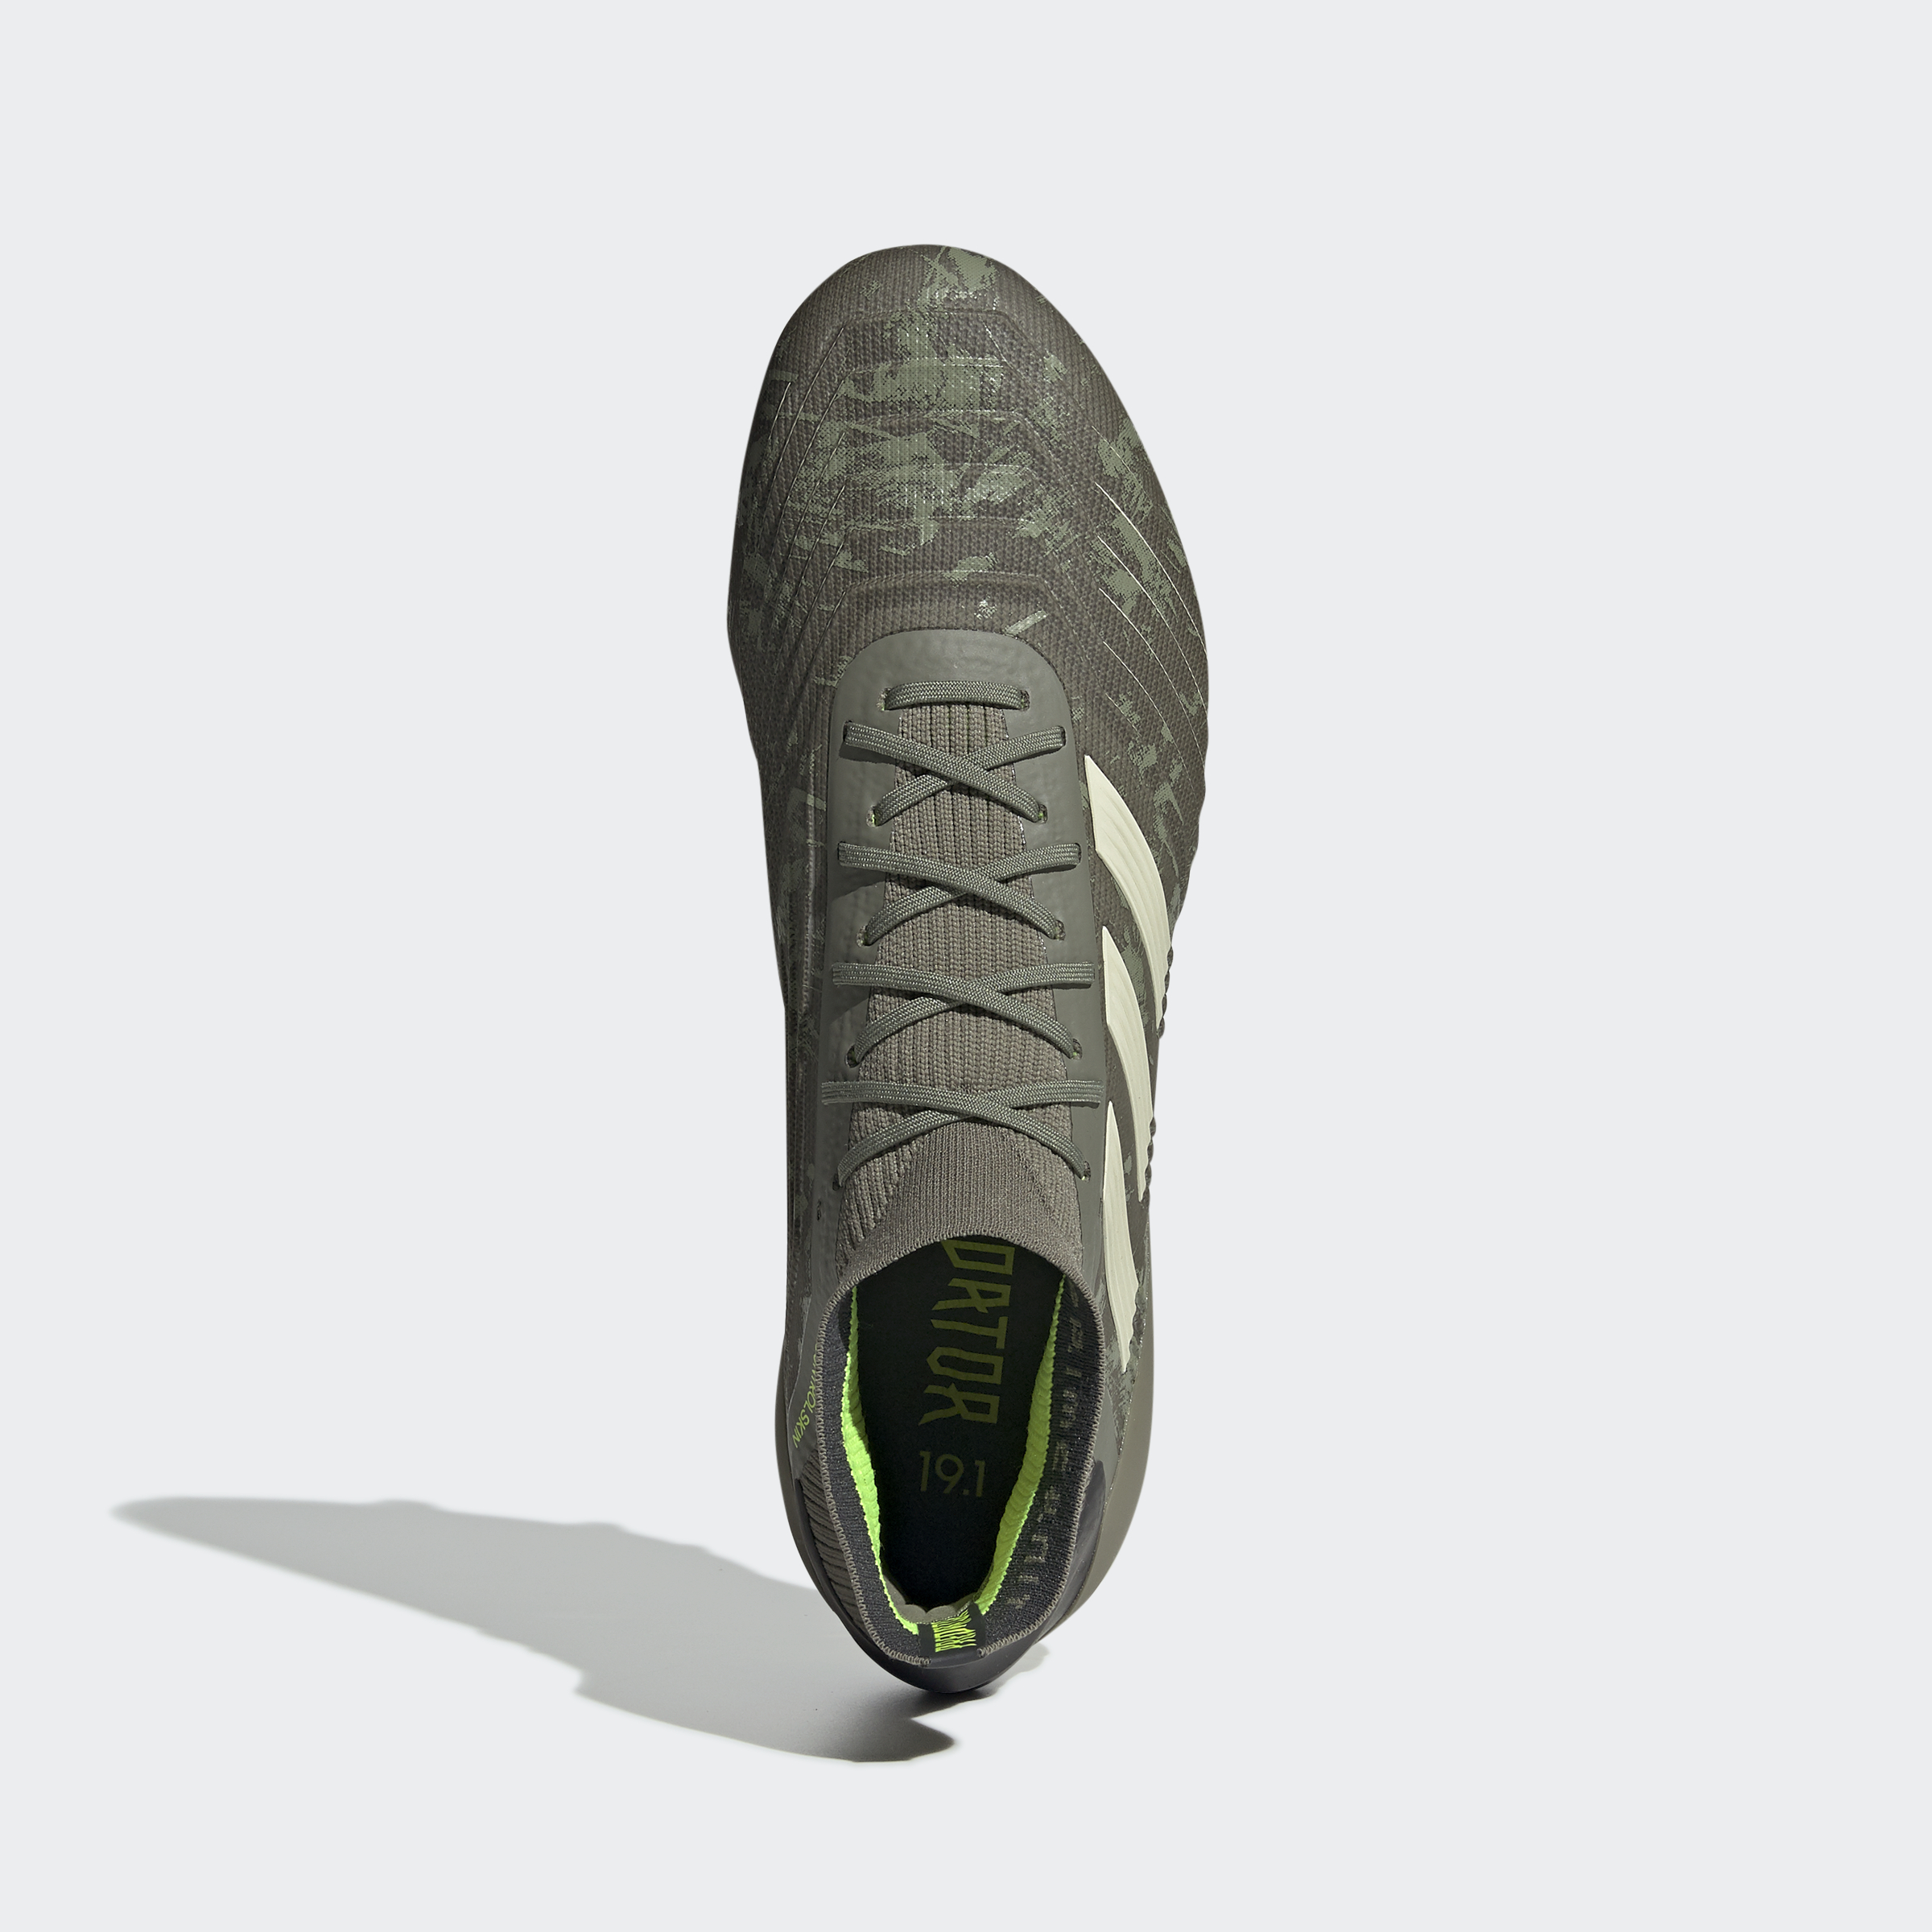 adidas-Predator-19-1-Firm-Ground-Cleats-Football-Boots thumbnail 14